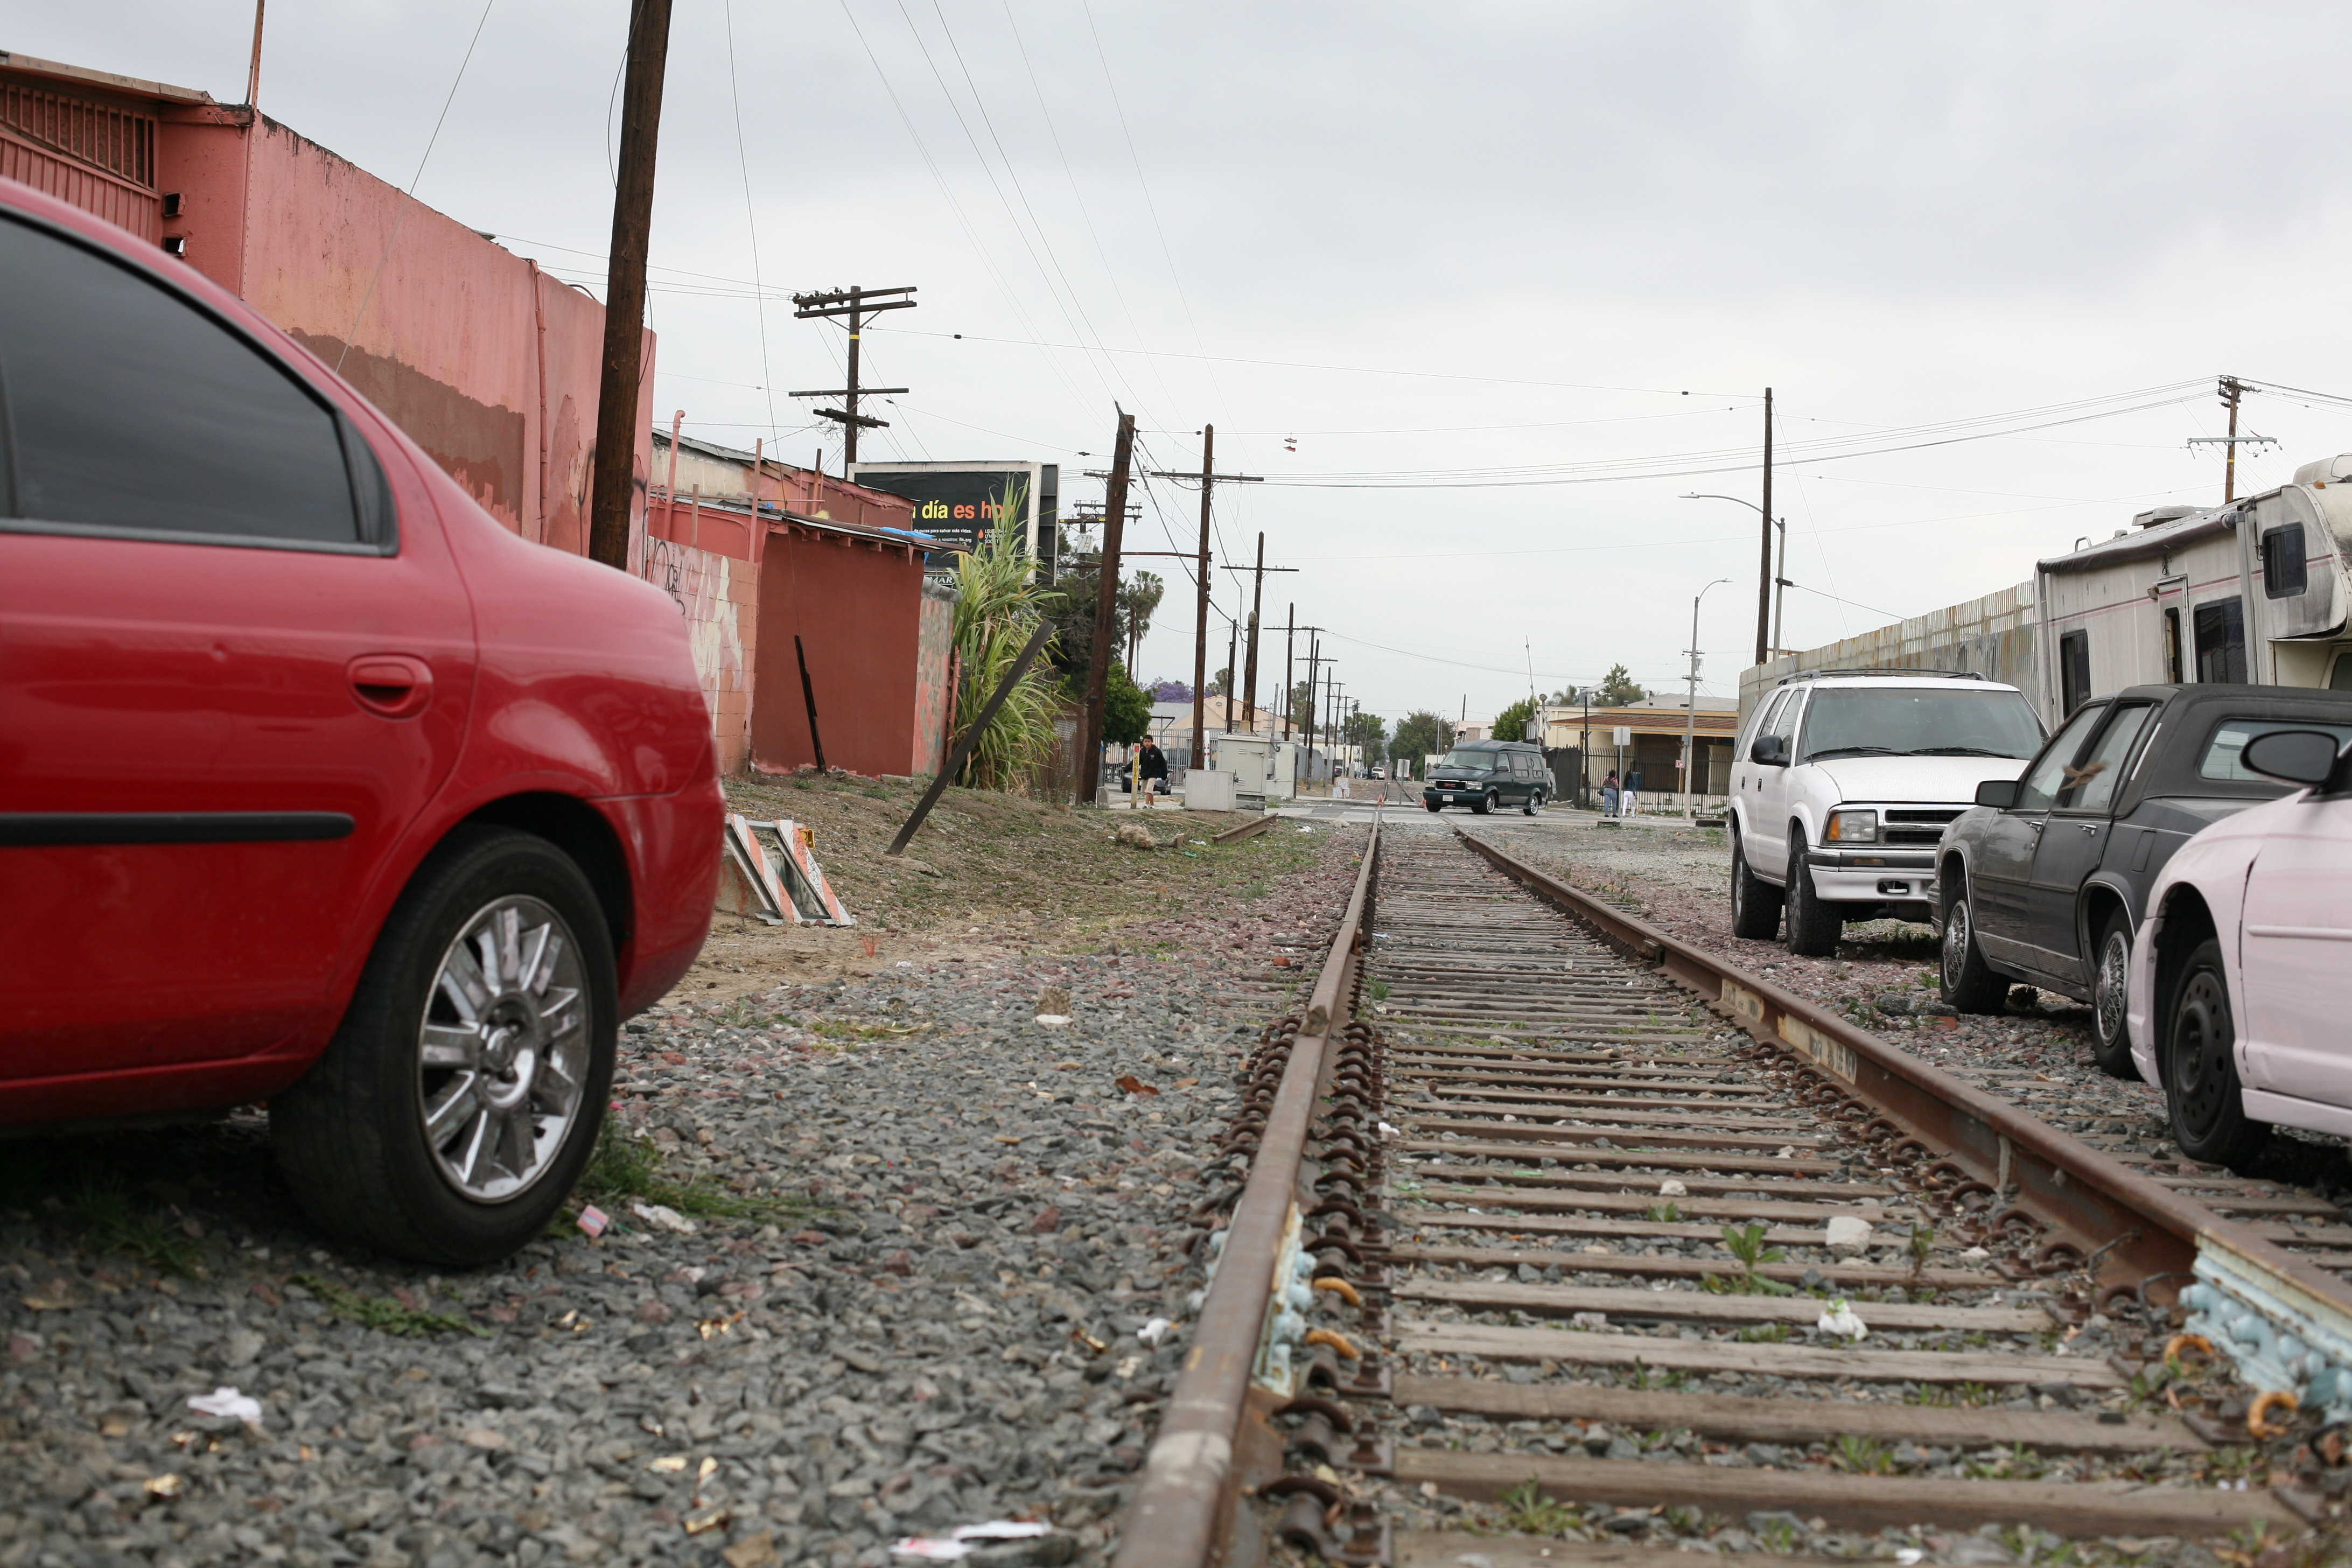 Abandoned train tracks line the road in South Los Angeles